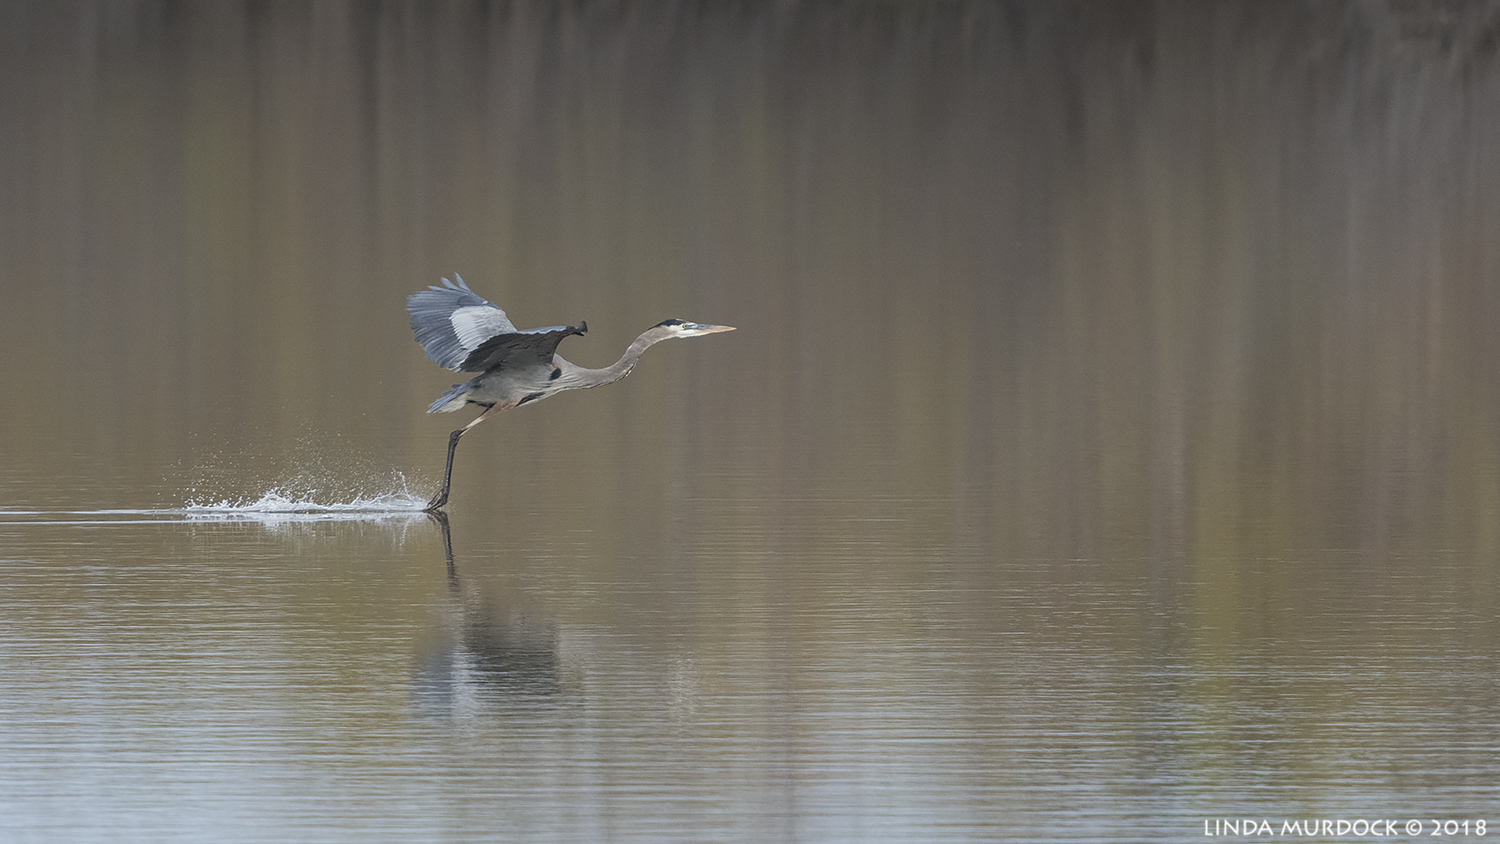 Great Blue Heron slows down crossing the lake Nikon D850 with NIKKOR 300mm f/4E PF ED VR with 1.4x TC~ 1/2000 sec f/6.3 ISO 1000; hand-held